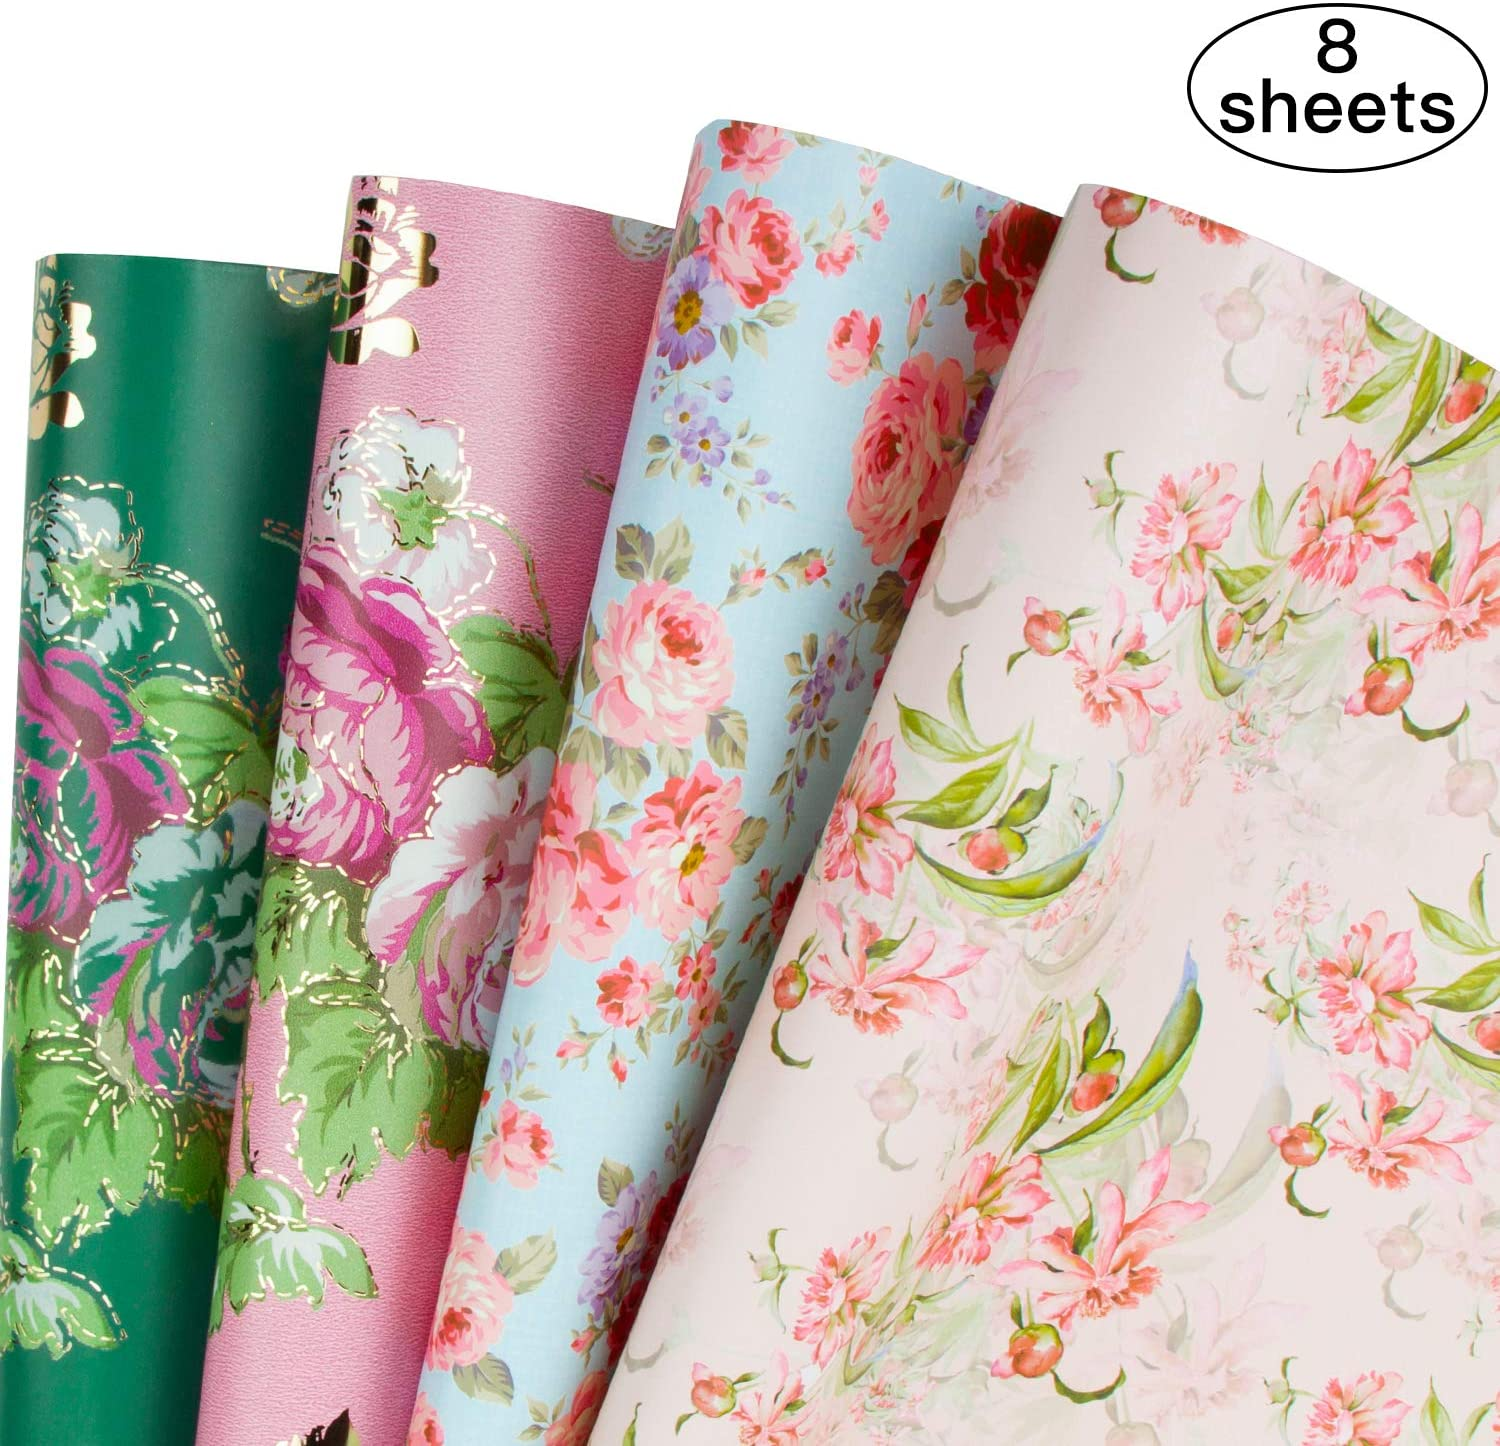 RUSPEPA Gift Wrapping Paper Sheets - Floral Design Perfect for Wedding,Birthday, Mothers Day, Congrats Gifts- 8 Folded Sheets-19.65 X27.5 Inch